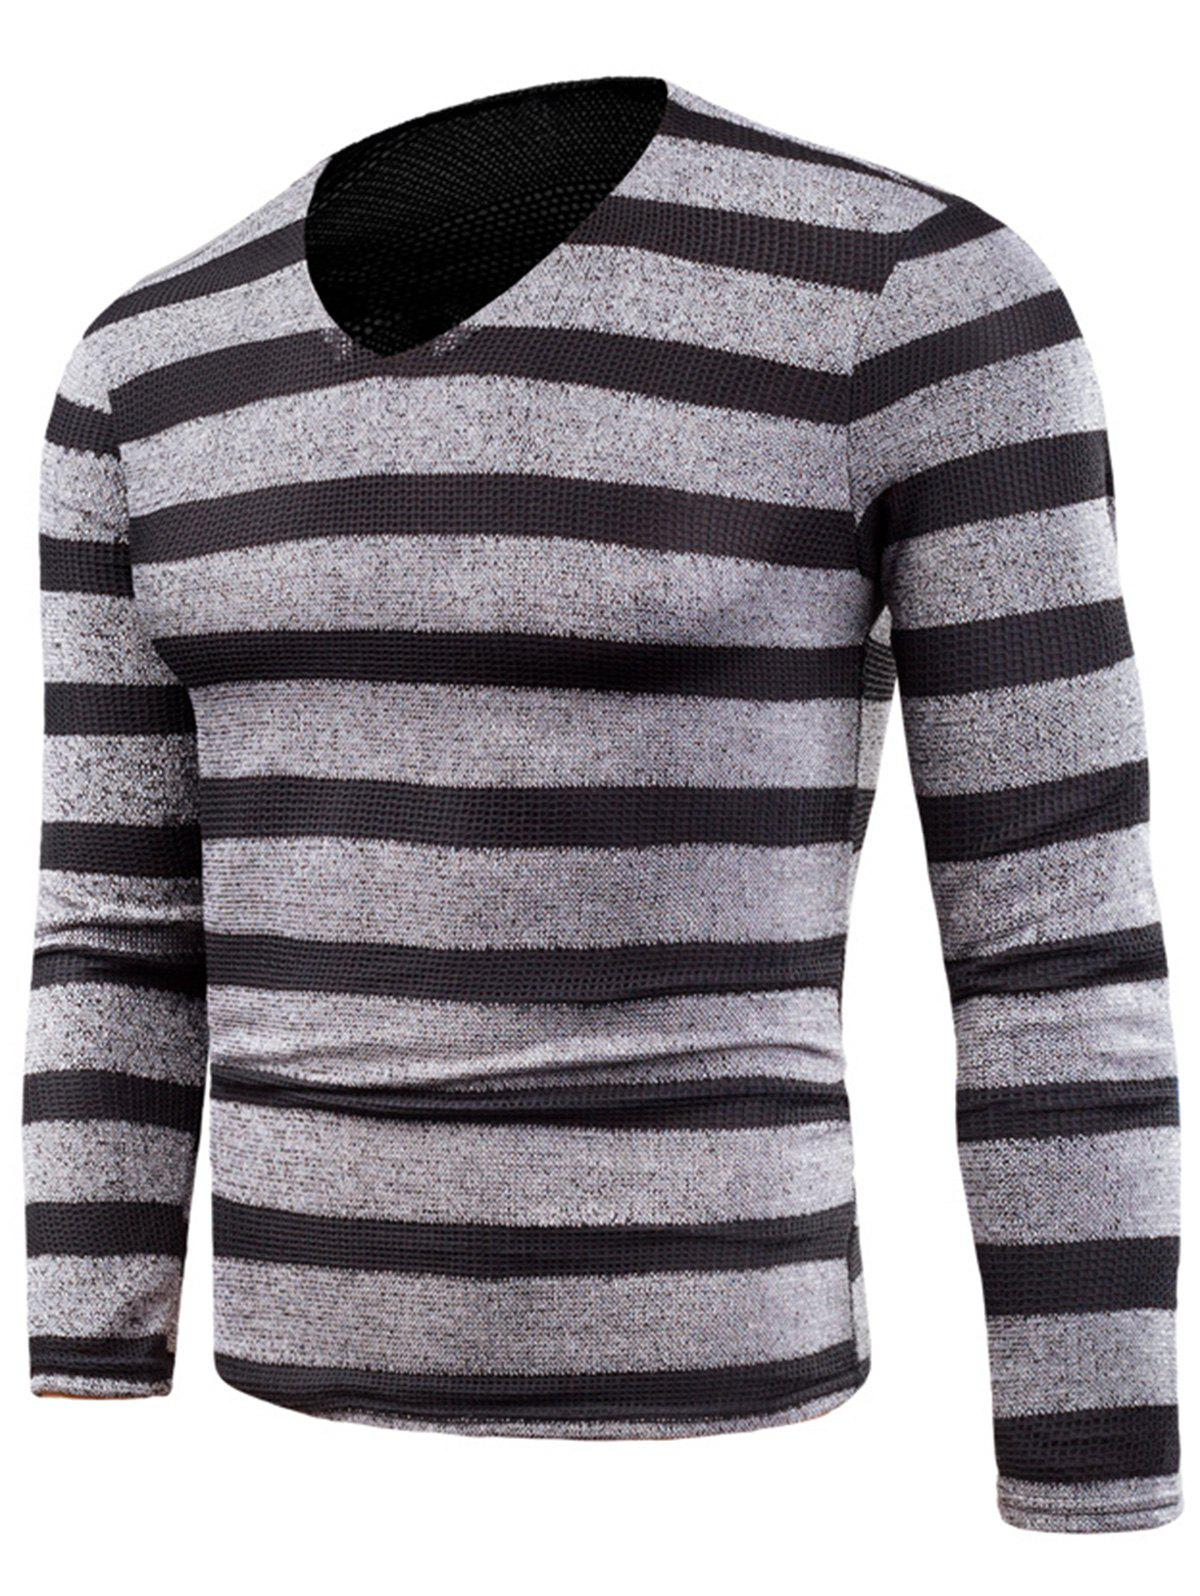 V Neck Long Sleeve Knitted Stripe T-shirt - GRAY 6XL